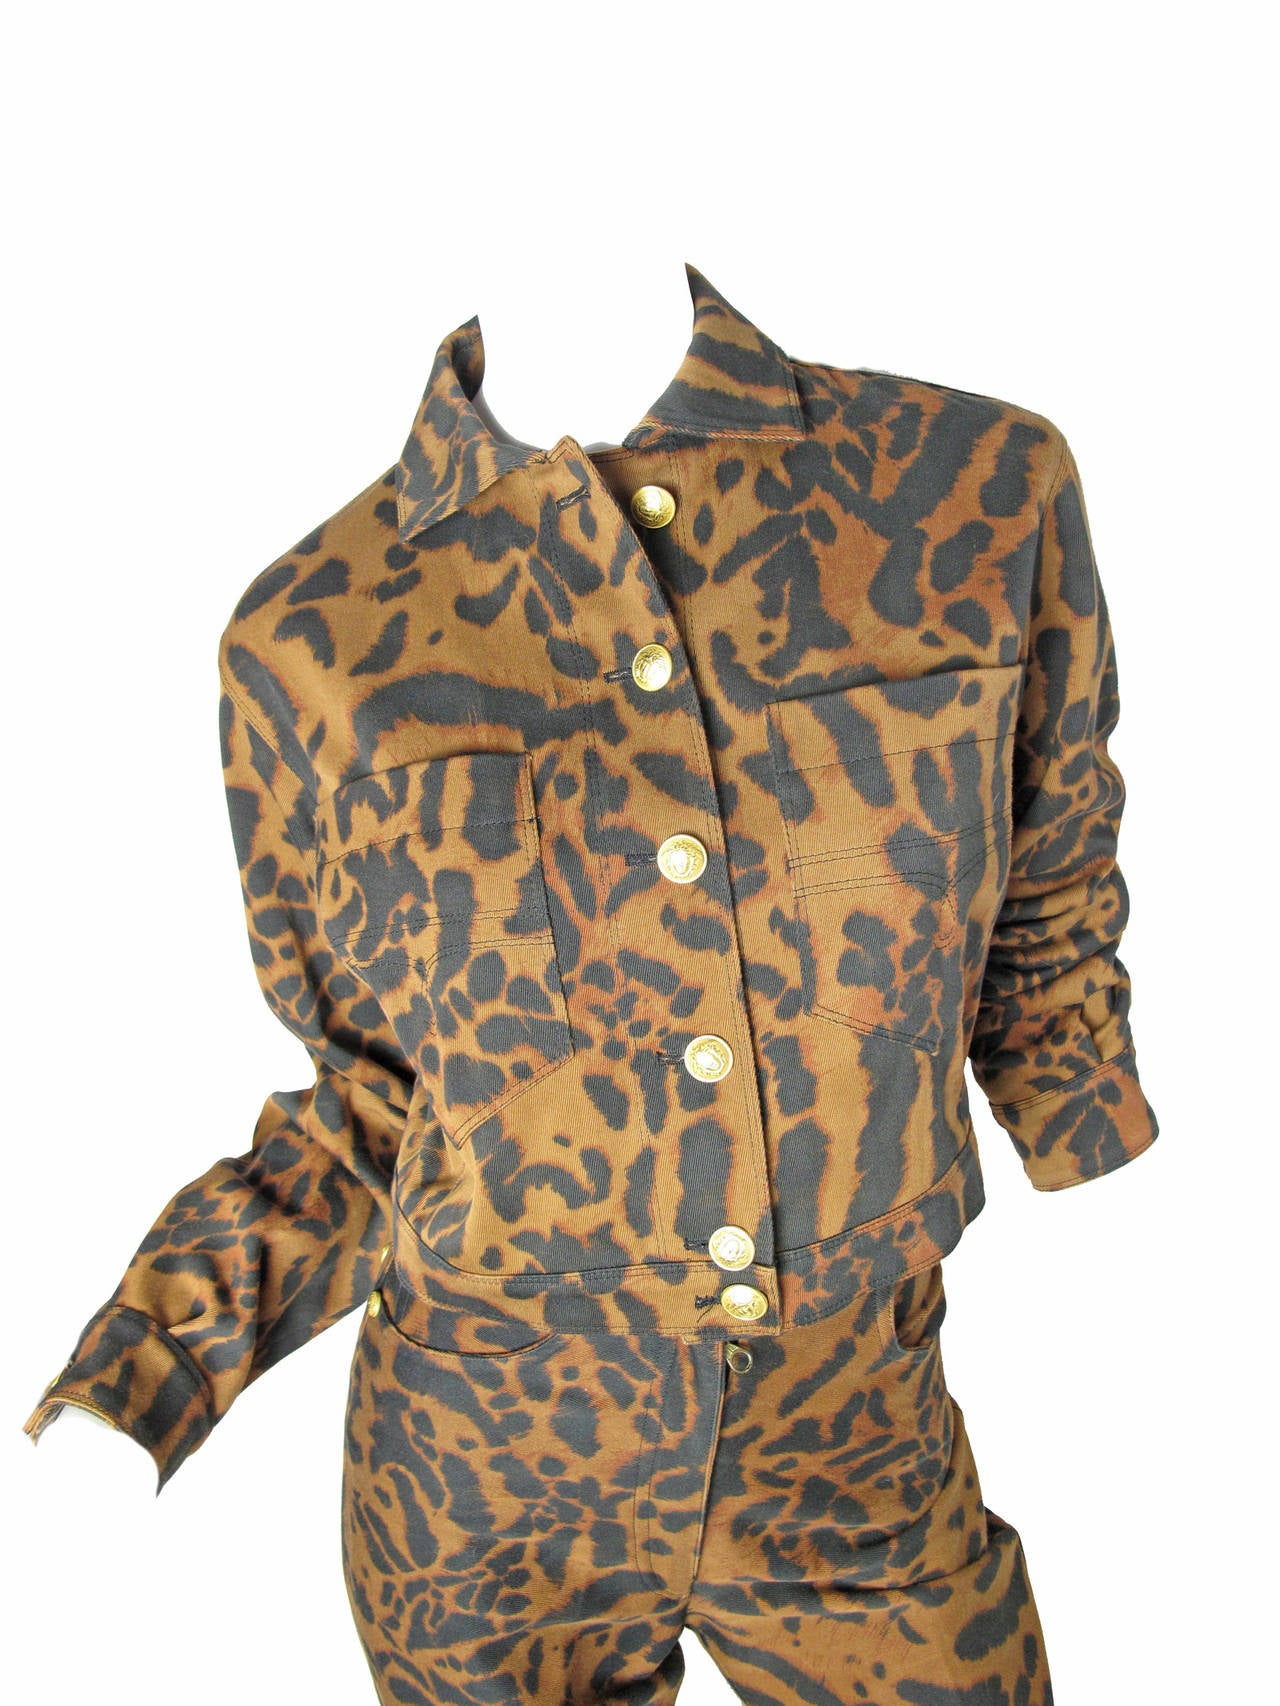 1992 Gianni Versace Leopard Denim Jacket and Jeans 2